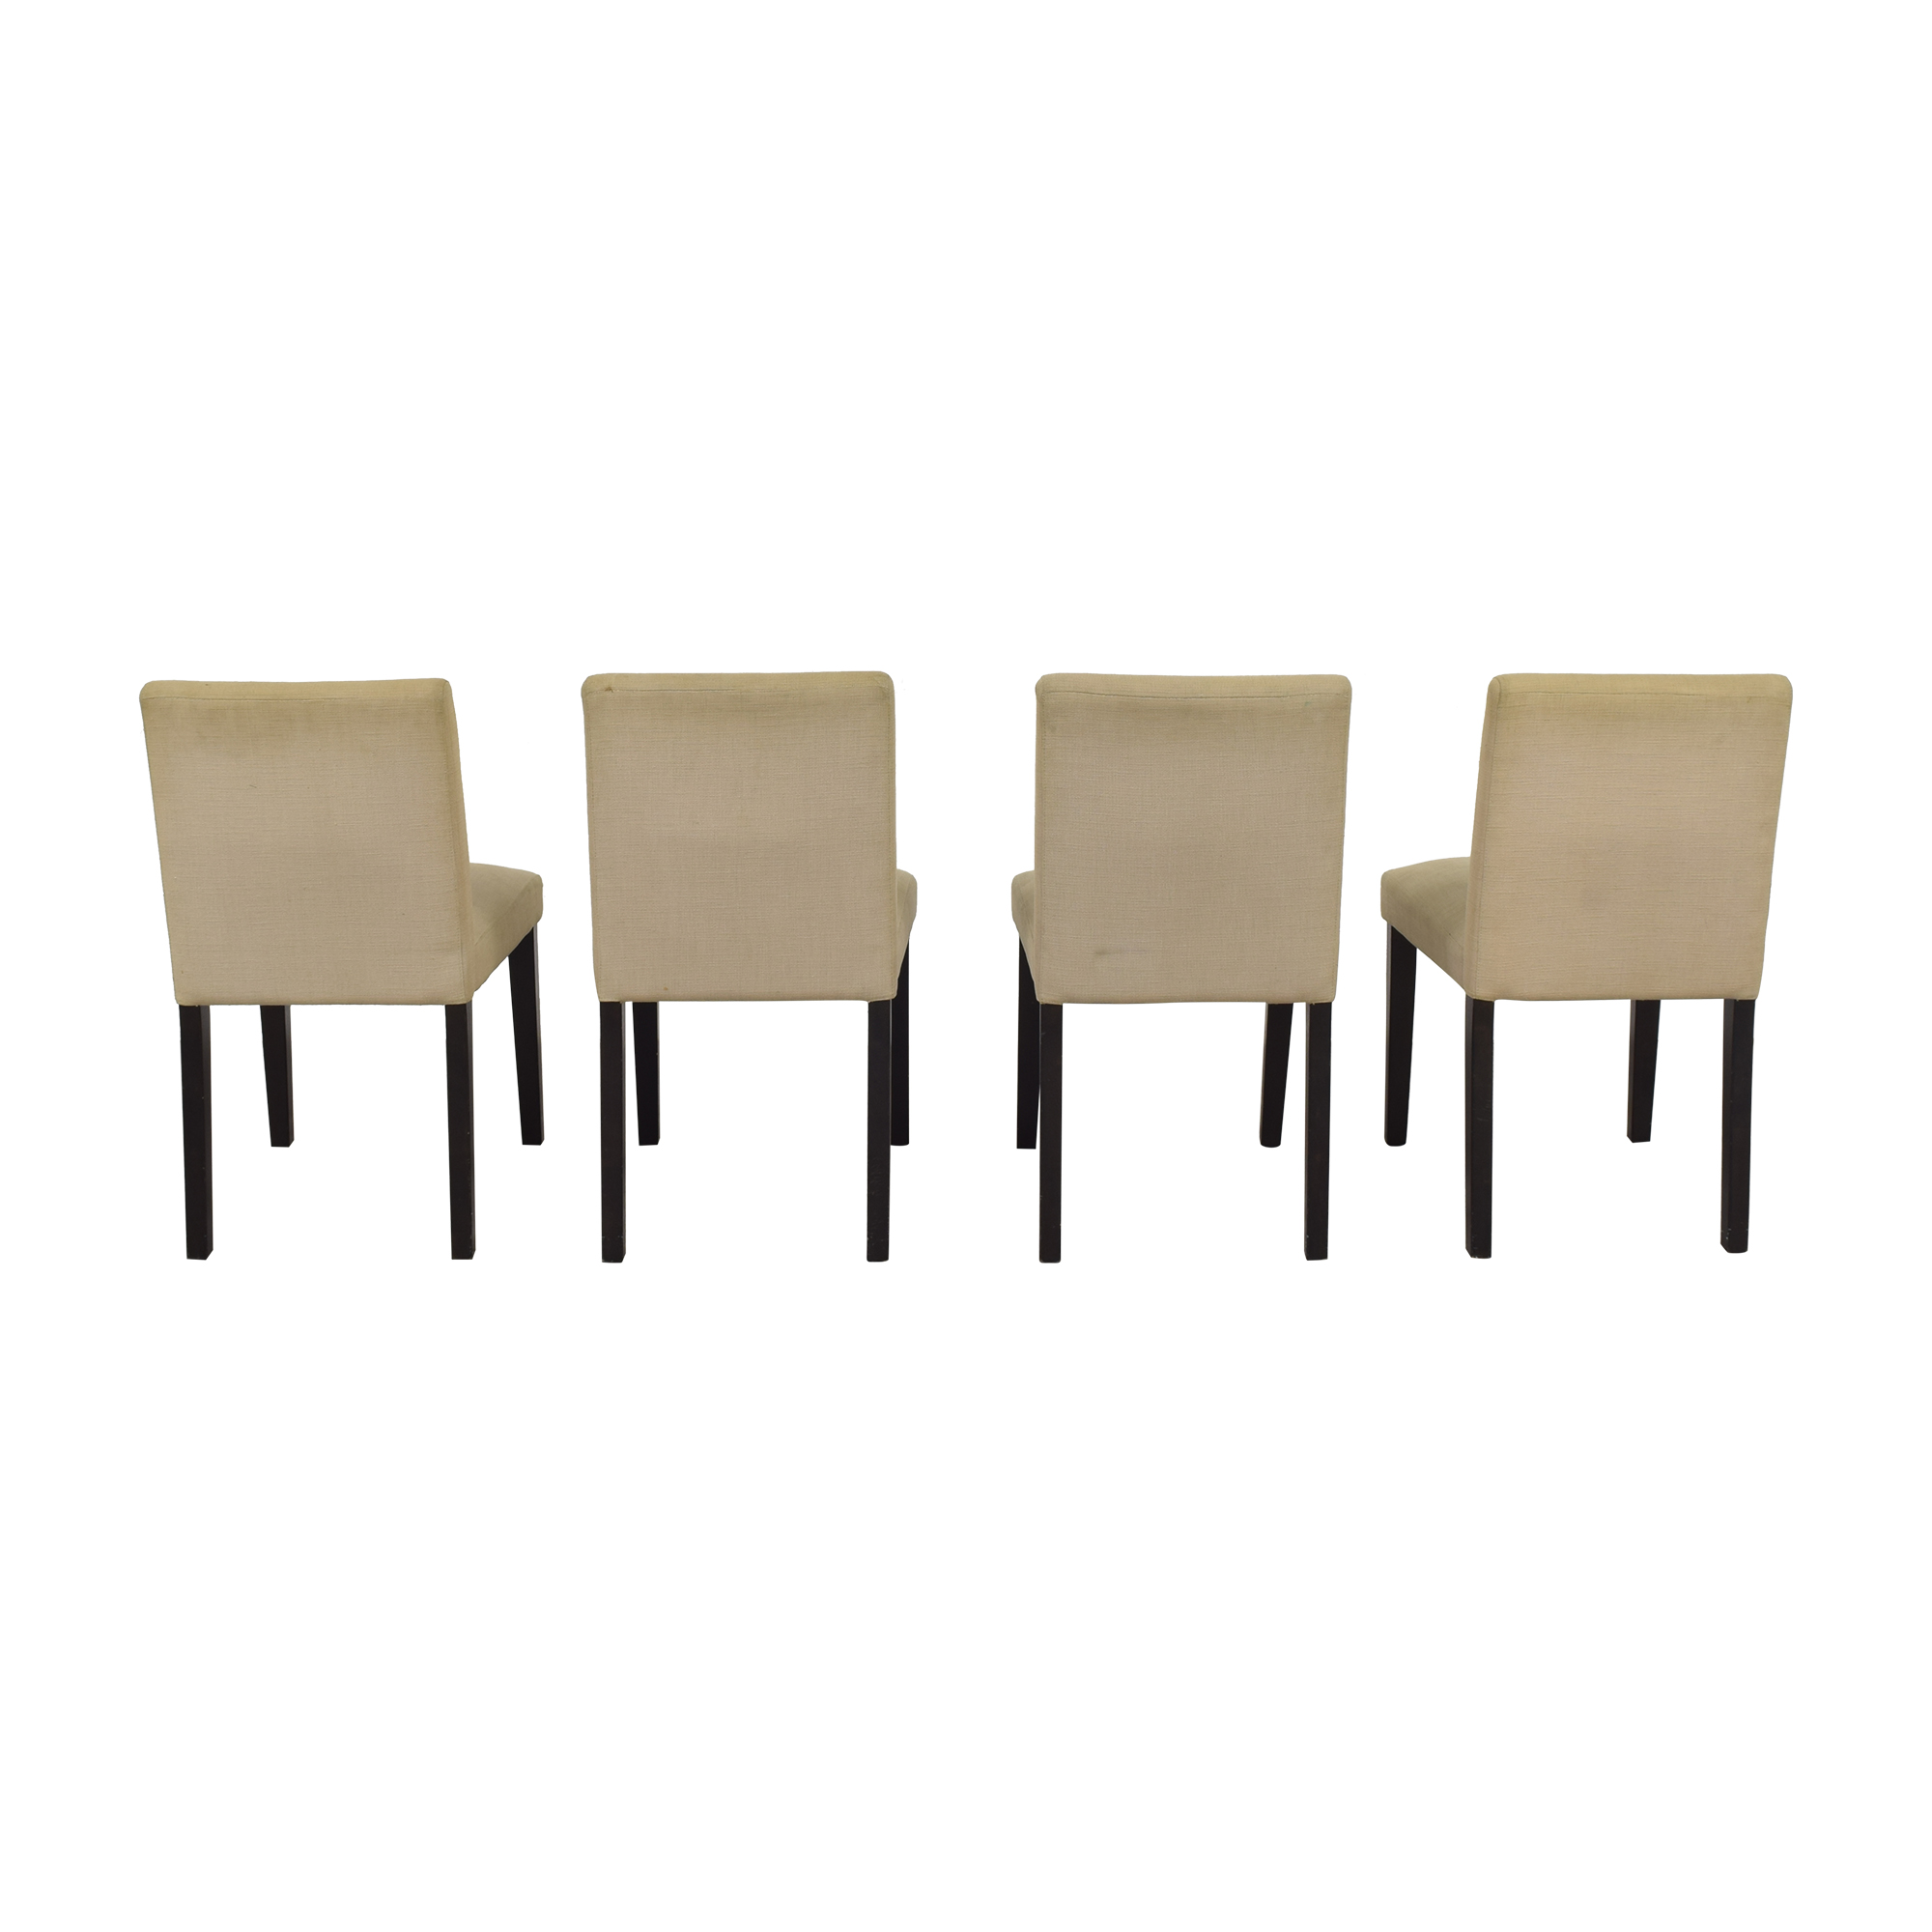 West Elm West Elm Porter Dining Chairs dimensions